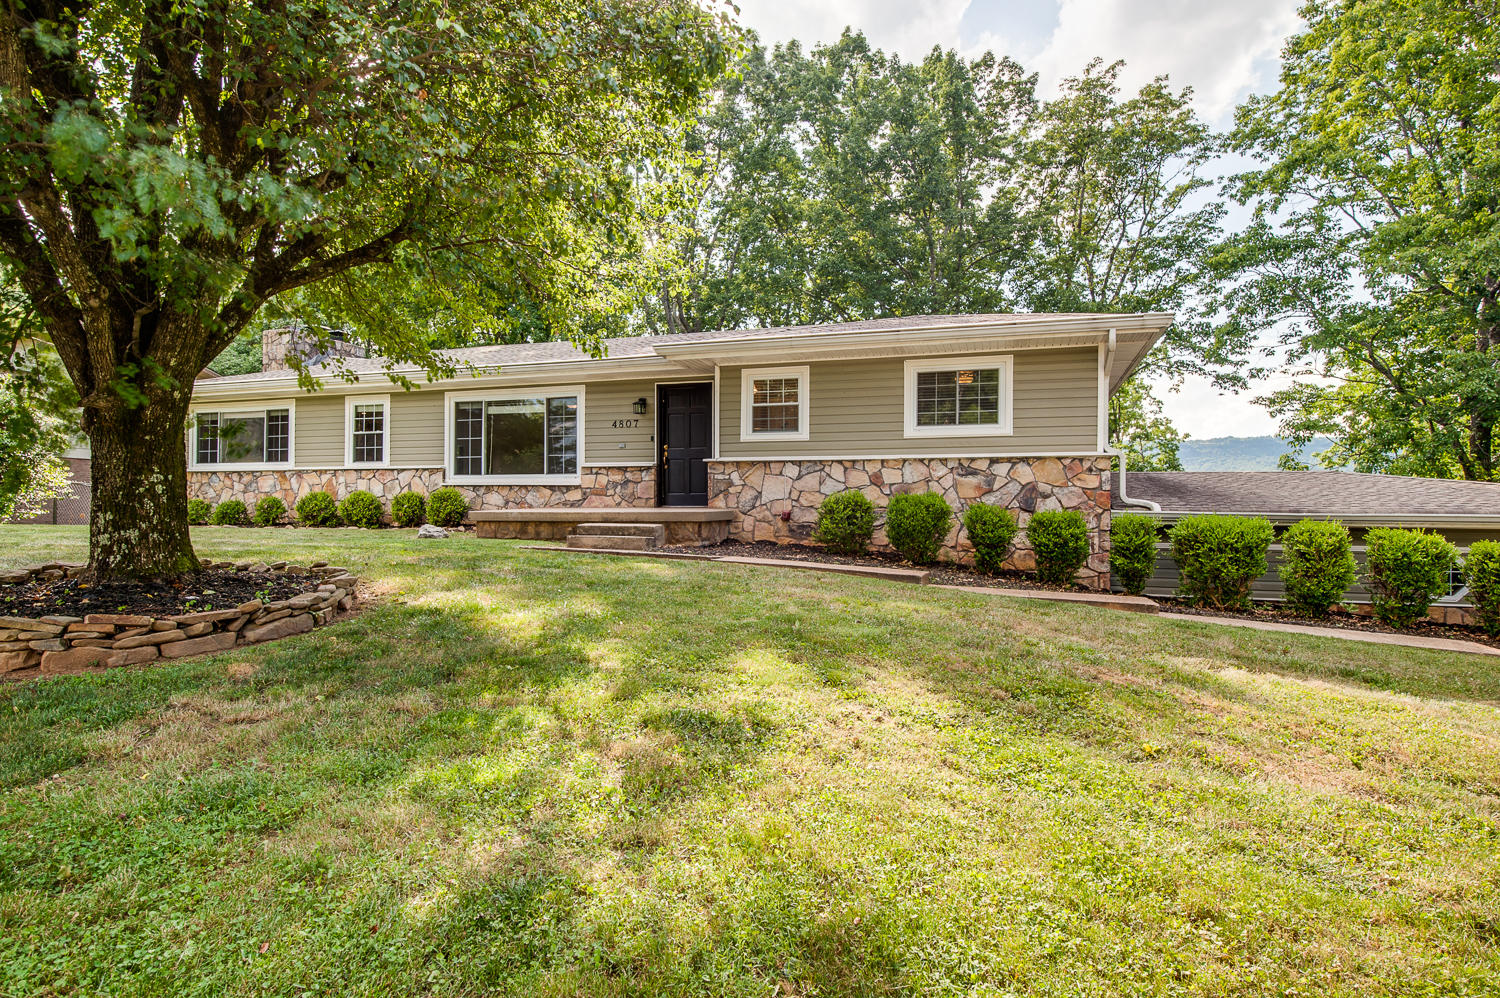 4807  Hunter  Tr, Chattanooga, Tennessee